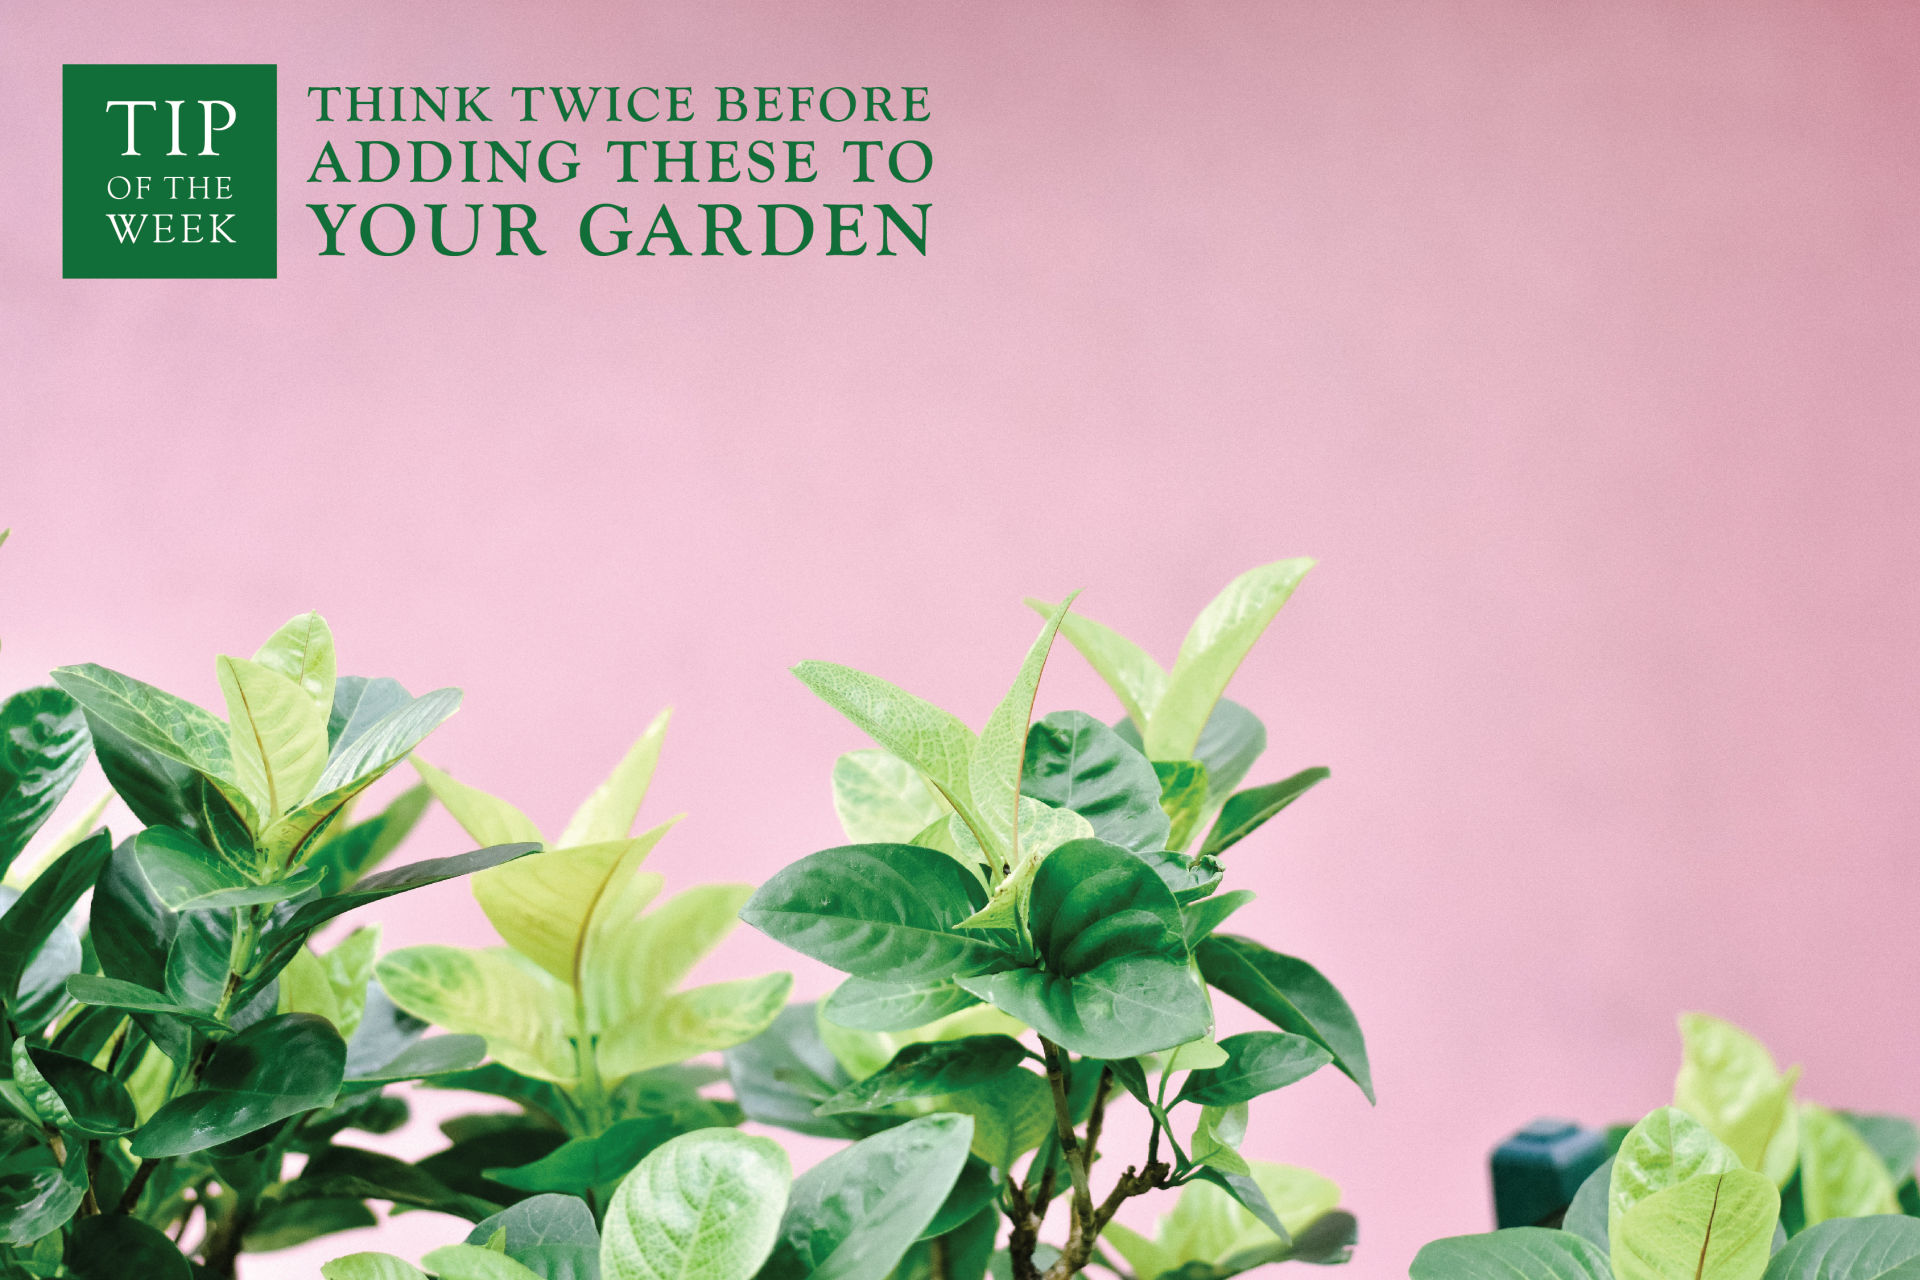 Think Twice Before Adding These to Your Garden